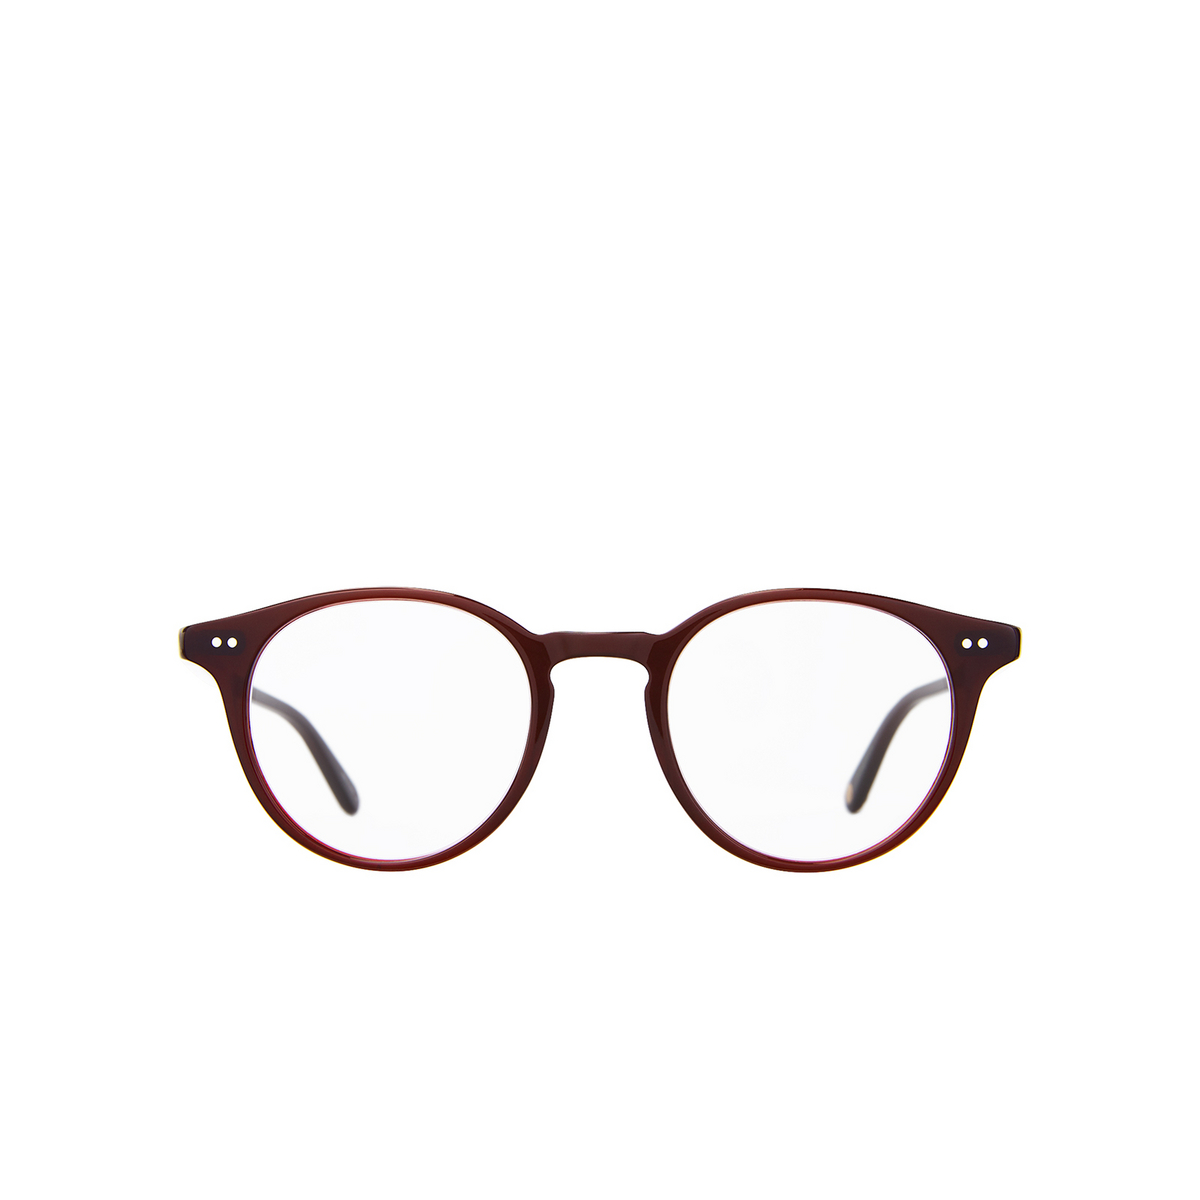 Garrett Leight® Round Eyeglasses: Clune color Barolo Bar - front view.